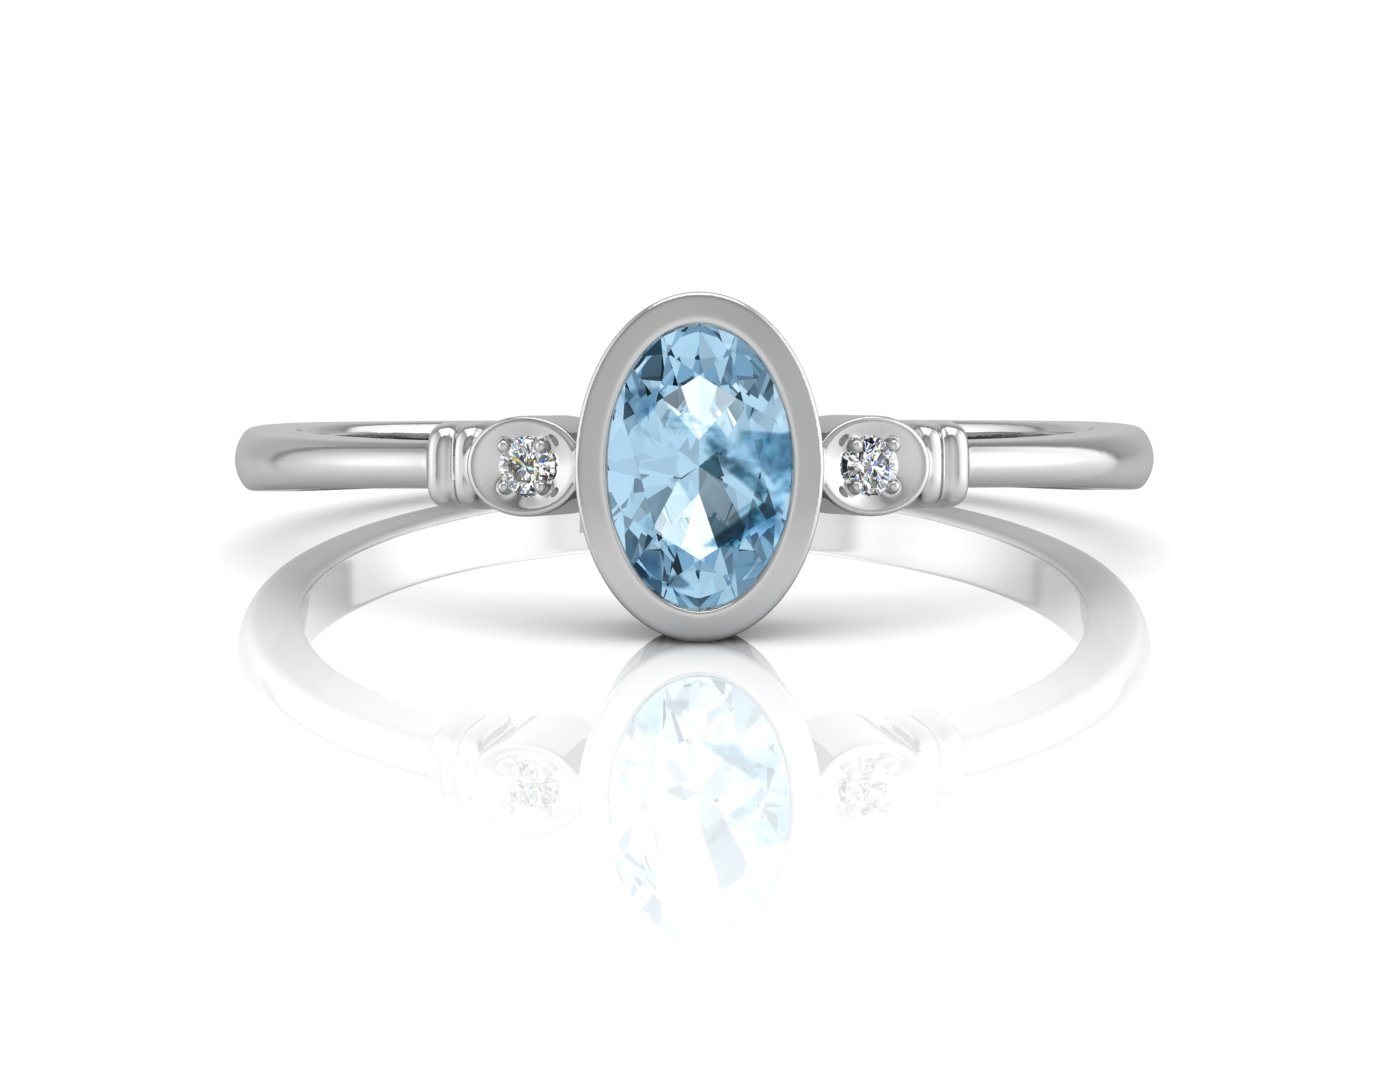 Lot 47 - 9ct White Gold Diamond And Oval Shape Blue Topaz Ring